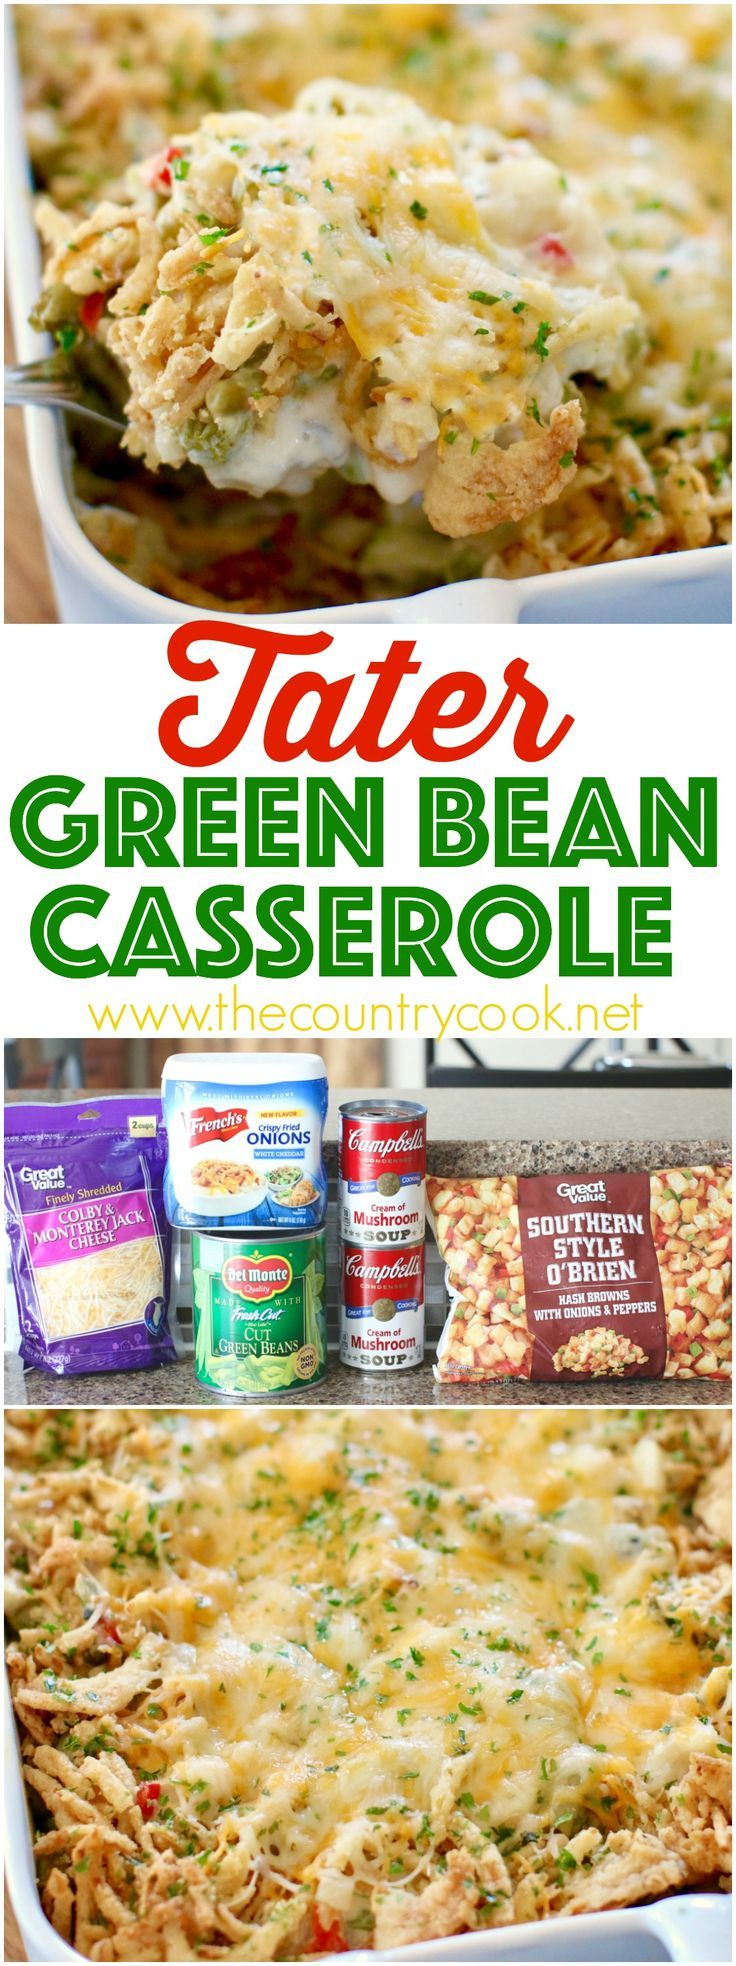 Tater Green Bean Casserole recipe from The Country Cook. All the yummy flavors of our favorite green bean casserole but with a small twist. Perfect for the holidays! #ad #CasseroleCravings